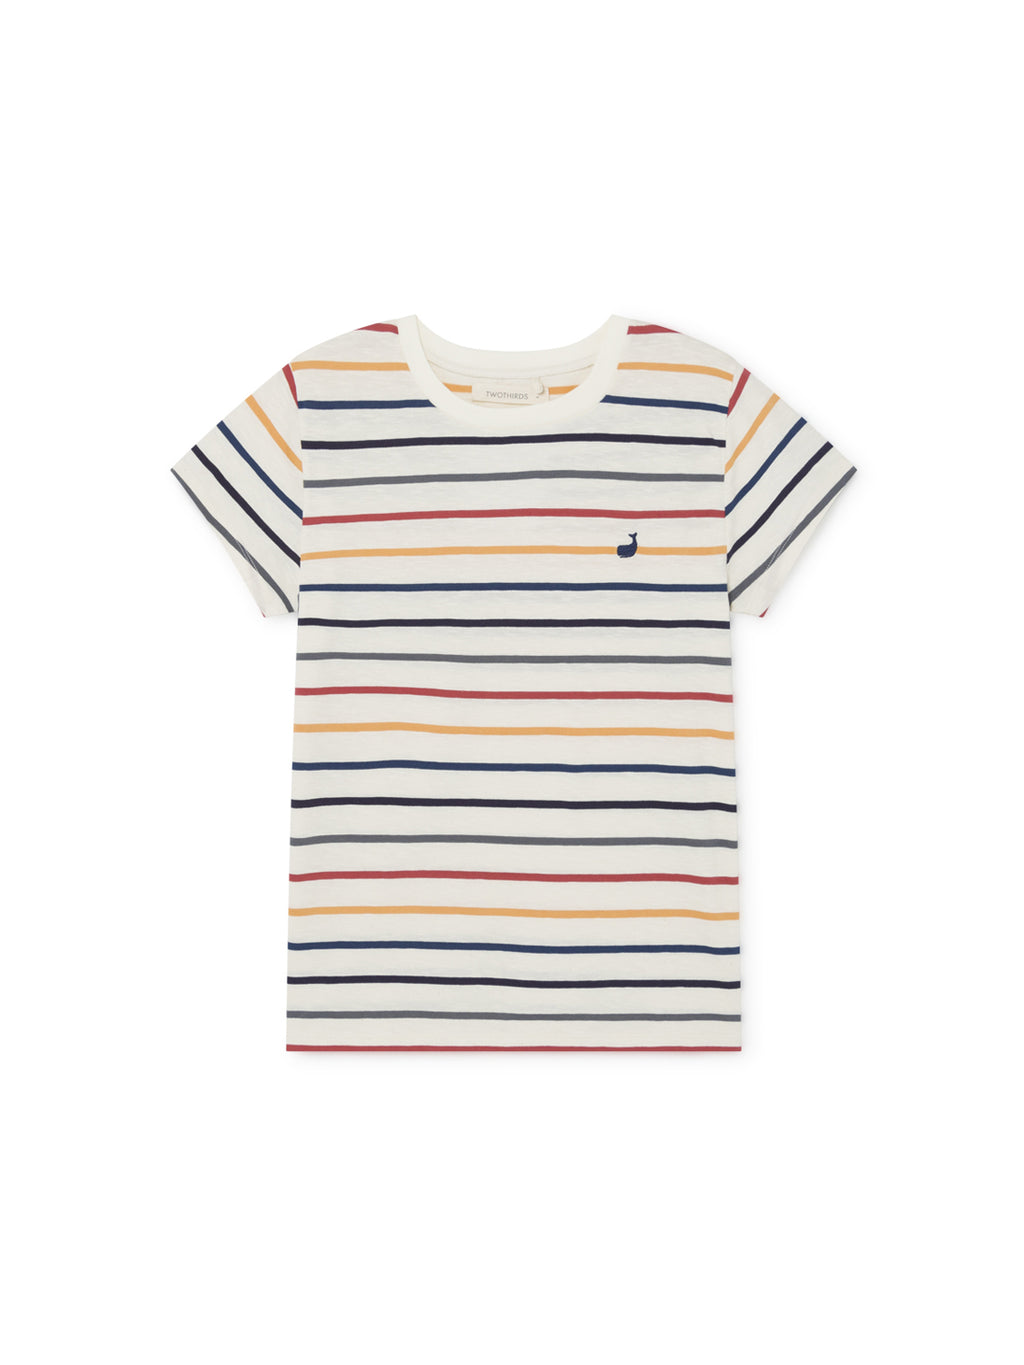 TWOTHIRDS Womens Tee: Kowama - Stripes front